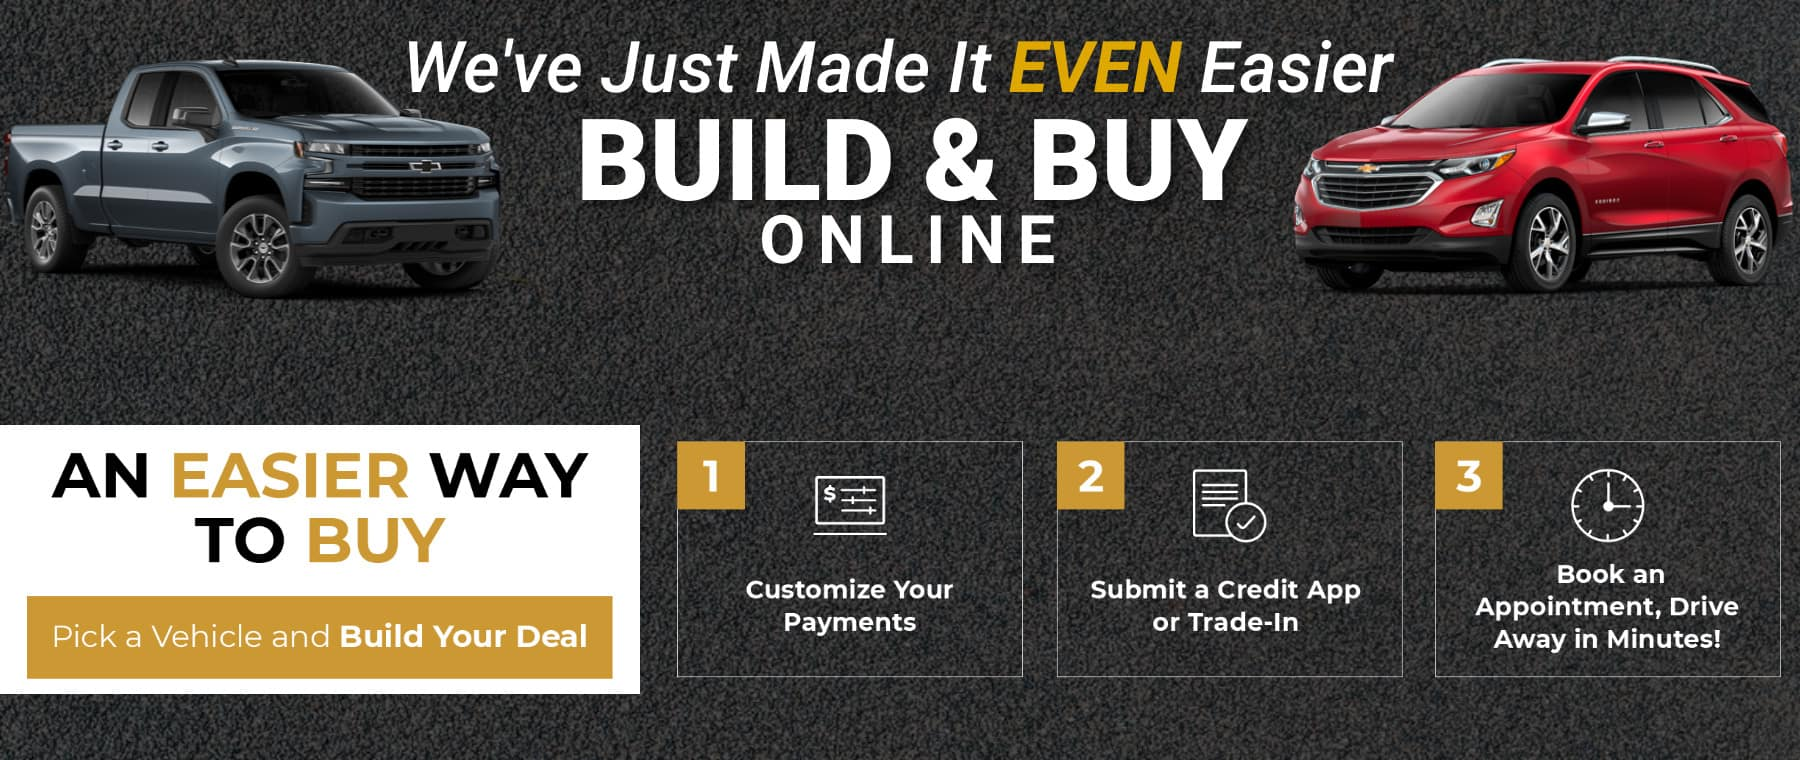 BUILD AND BUY ONLINE-1800x760 (1)